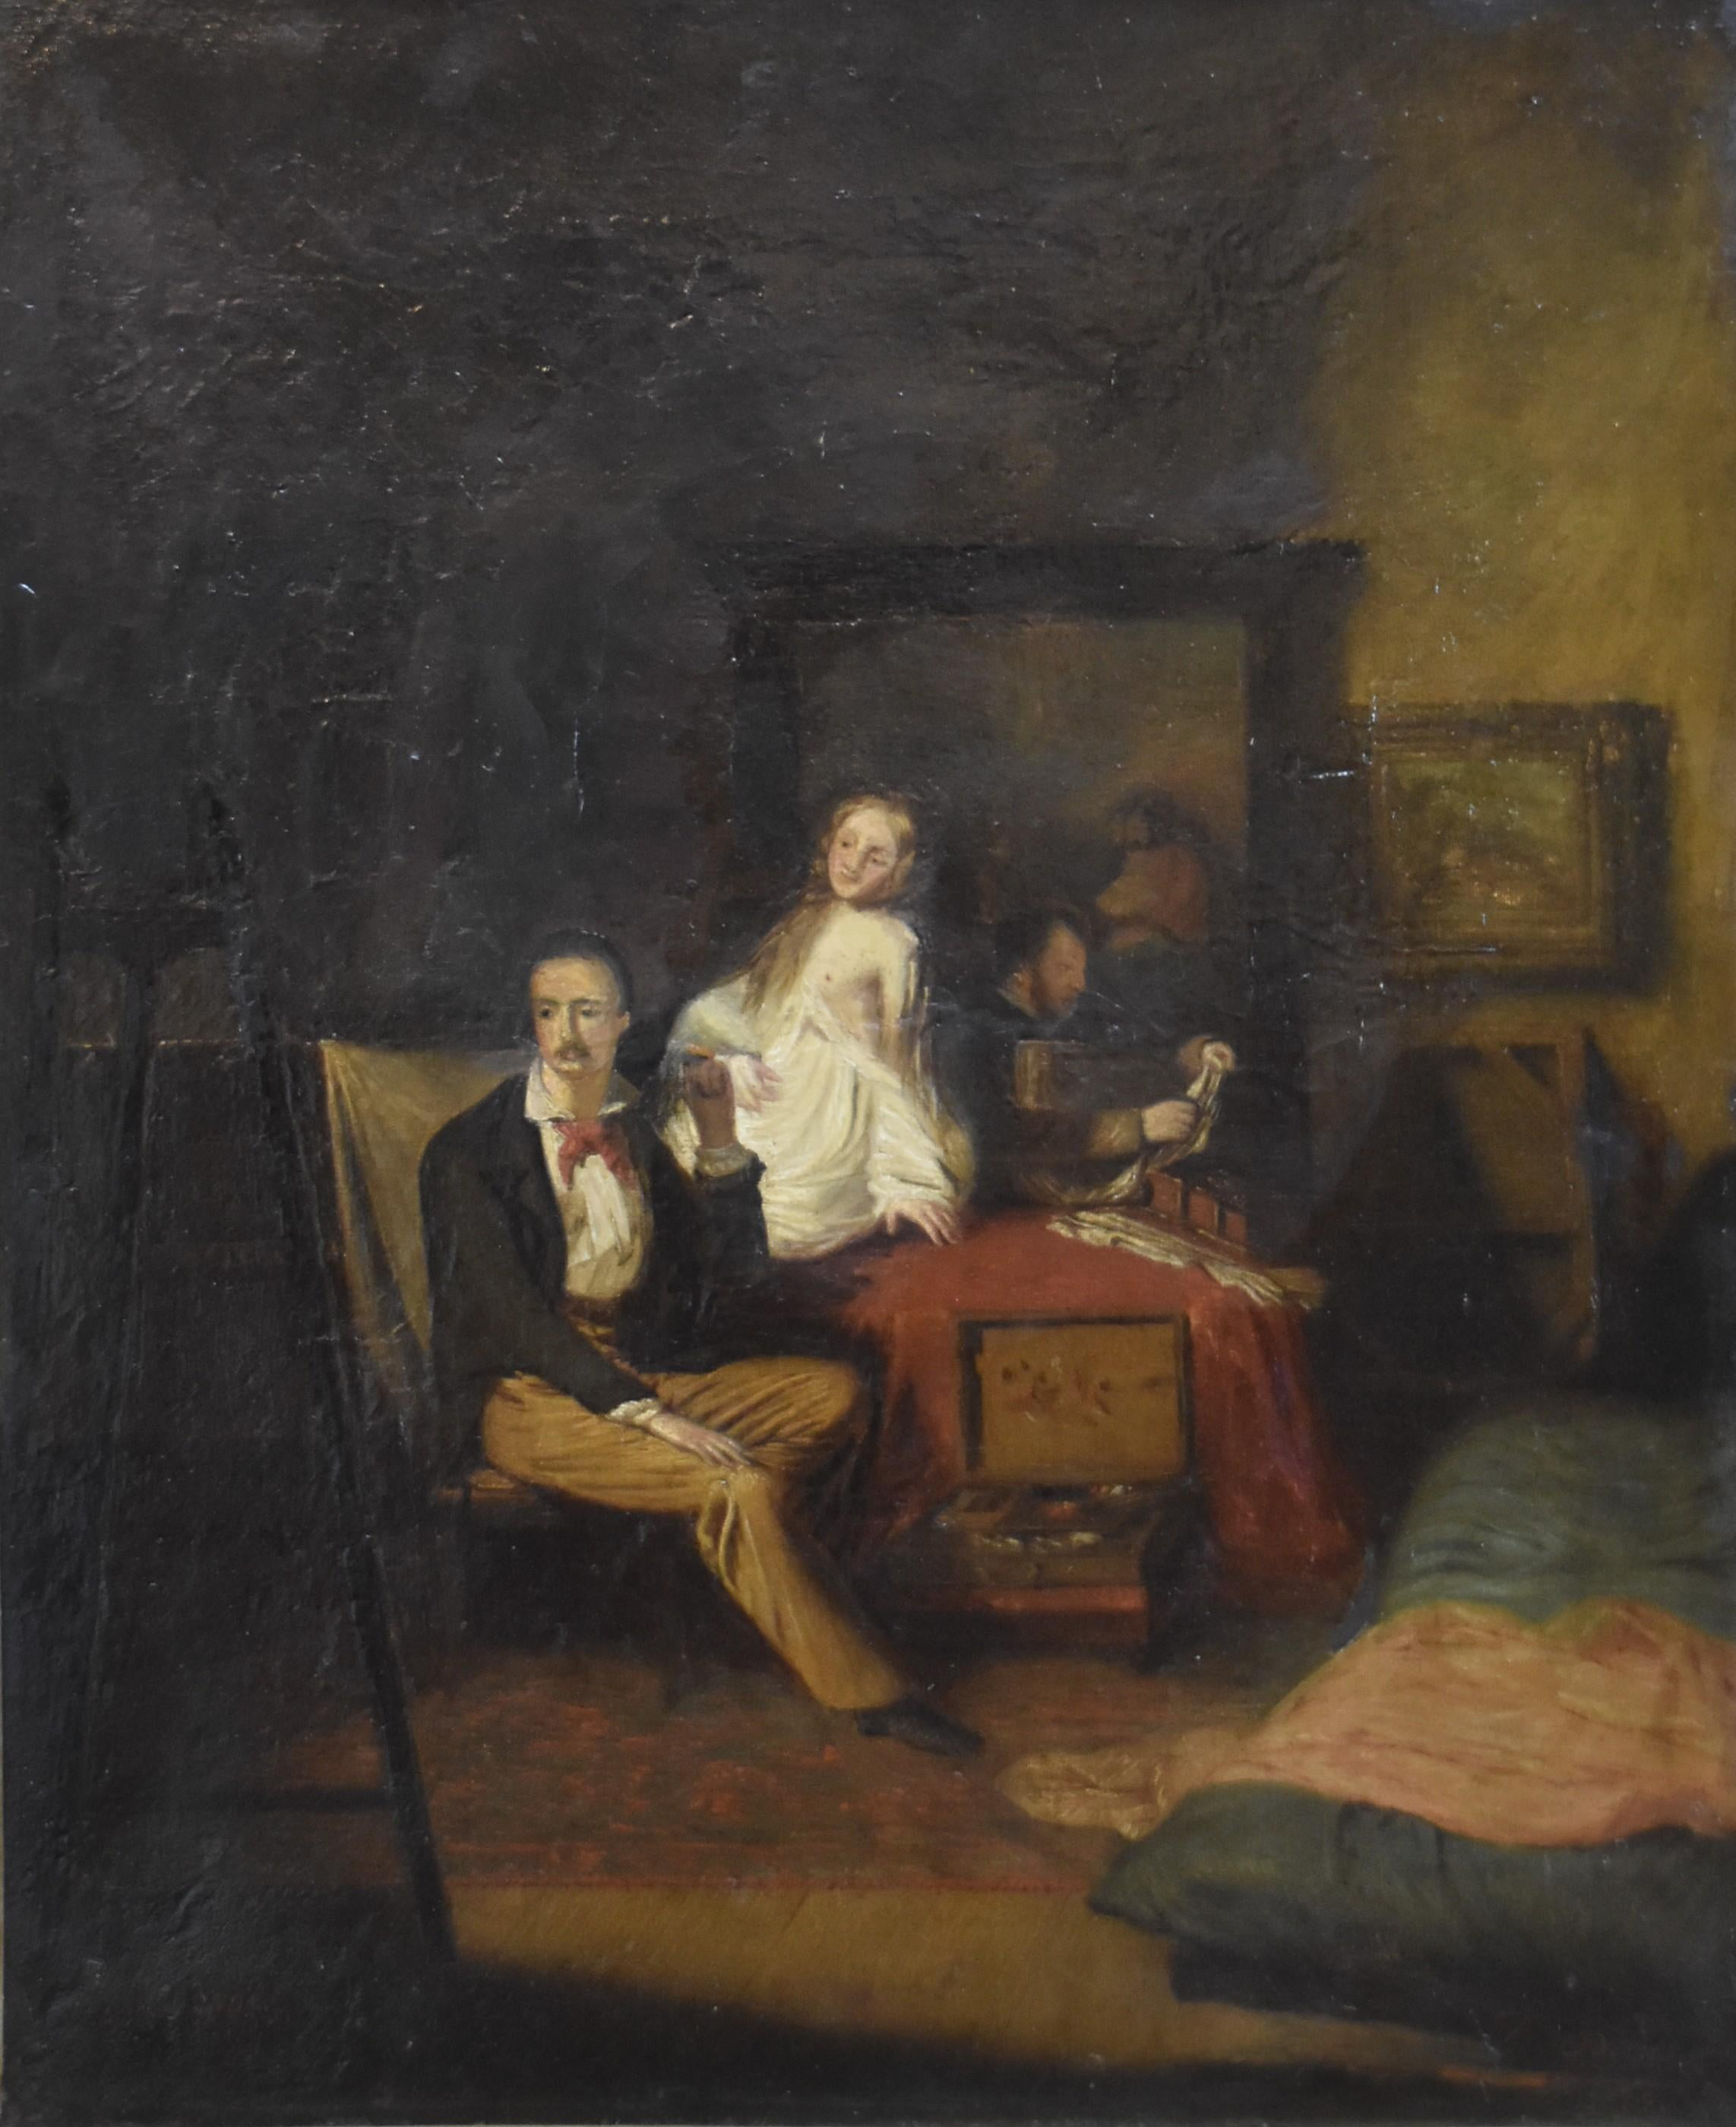 P Deltour (?), An artist and his models in the workshop, 1879, oil on canvas